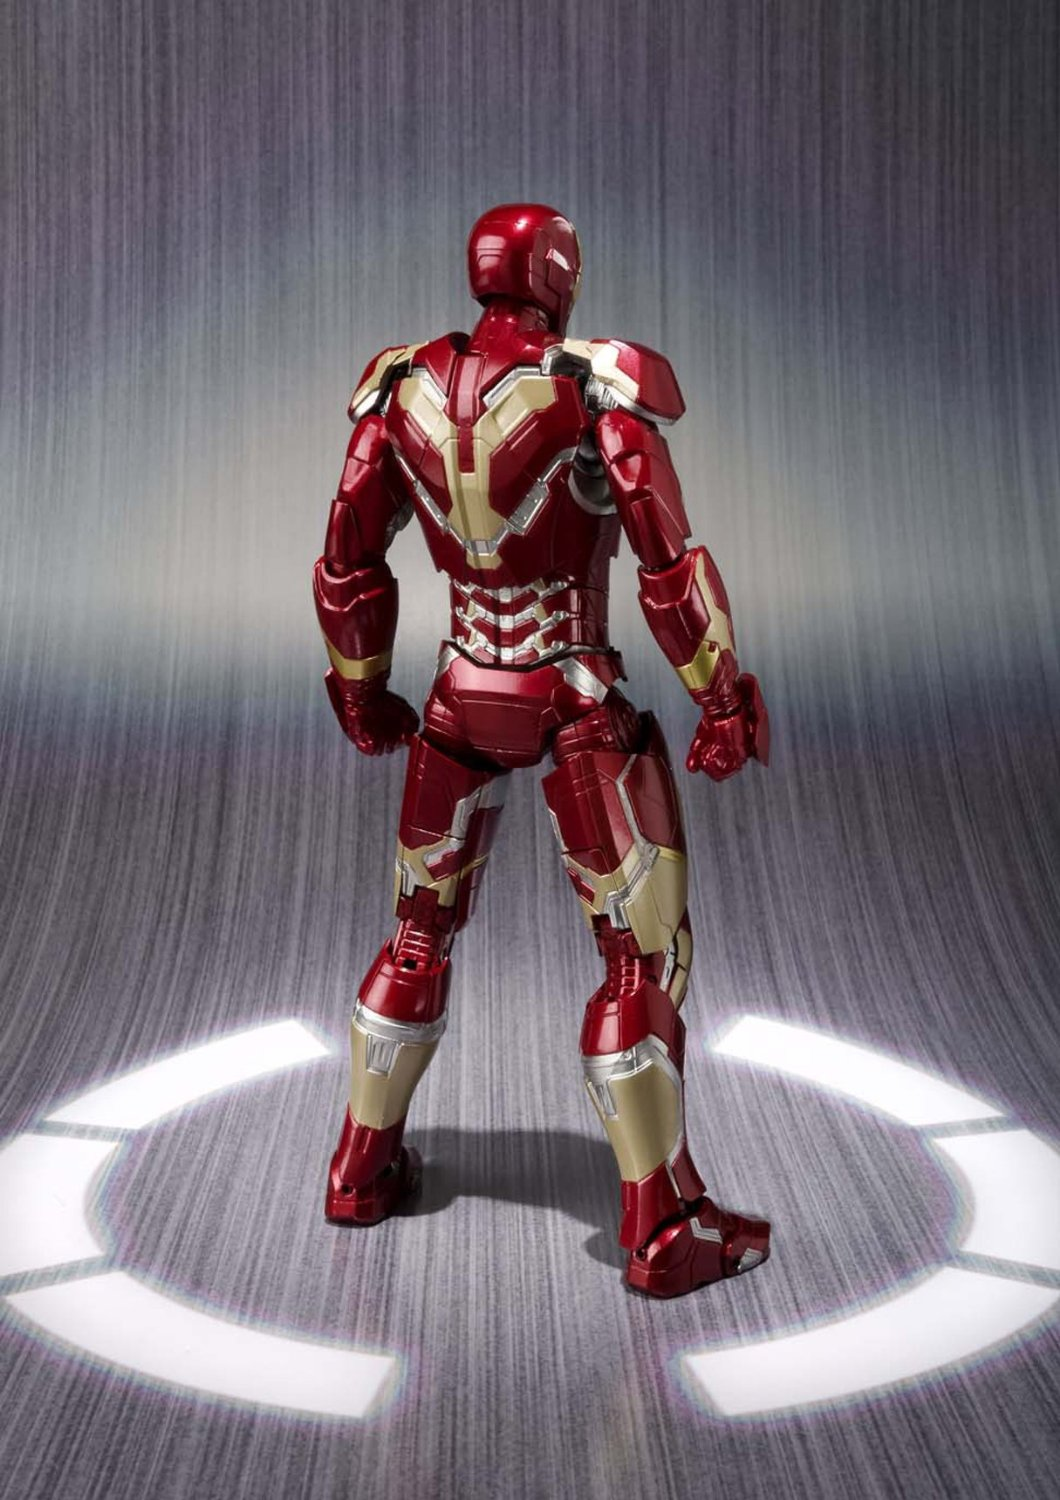 15 h figuarts Figurine Of Mark AvengersAge Man S Articulée UltronIron The 43 Cm EHD9IWY2